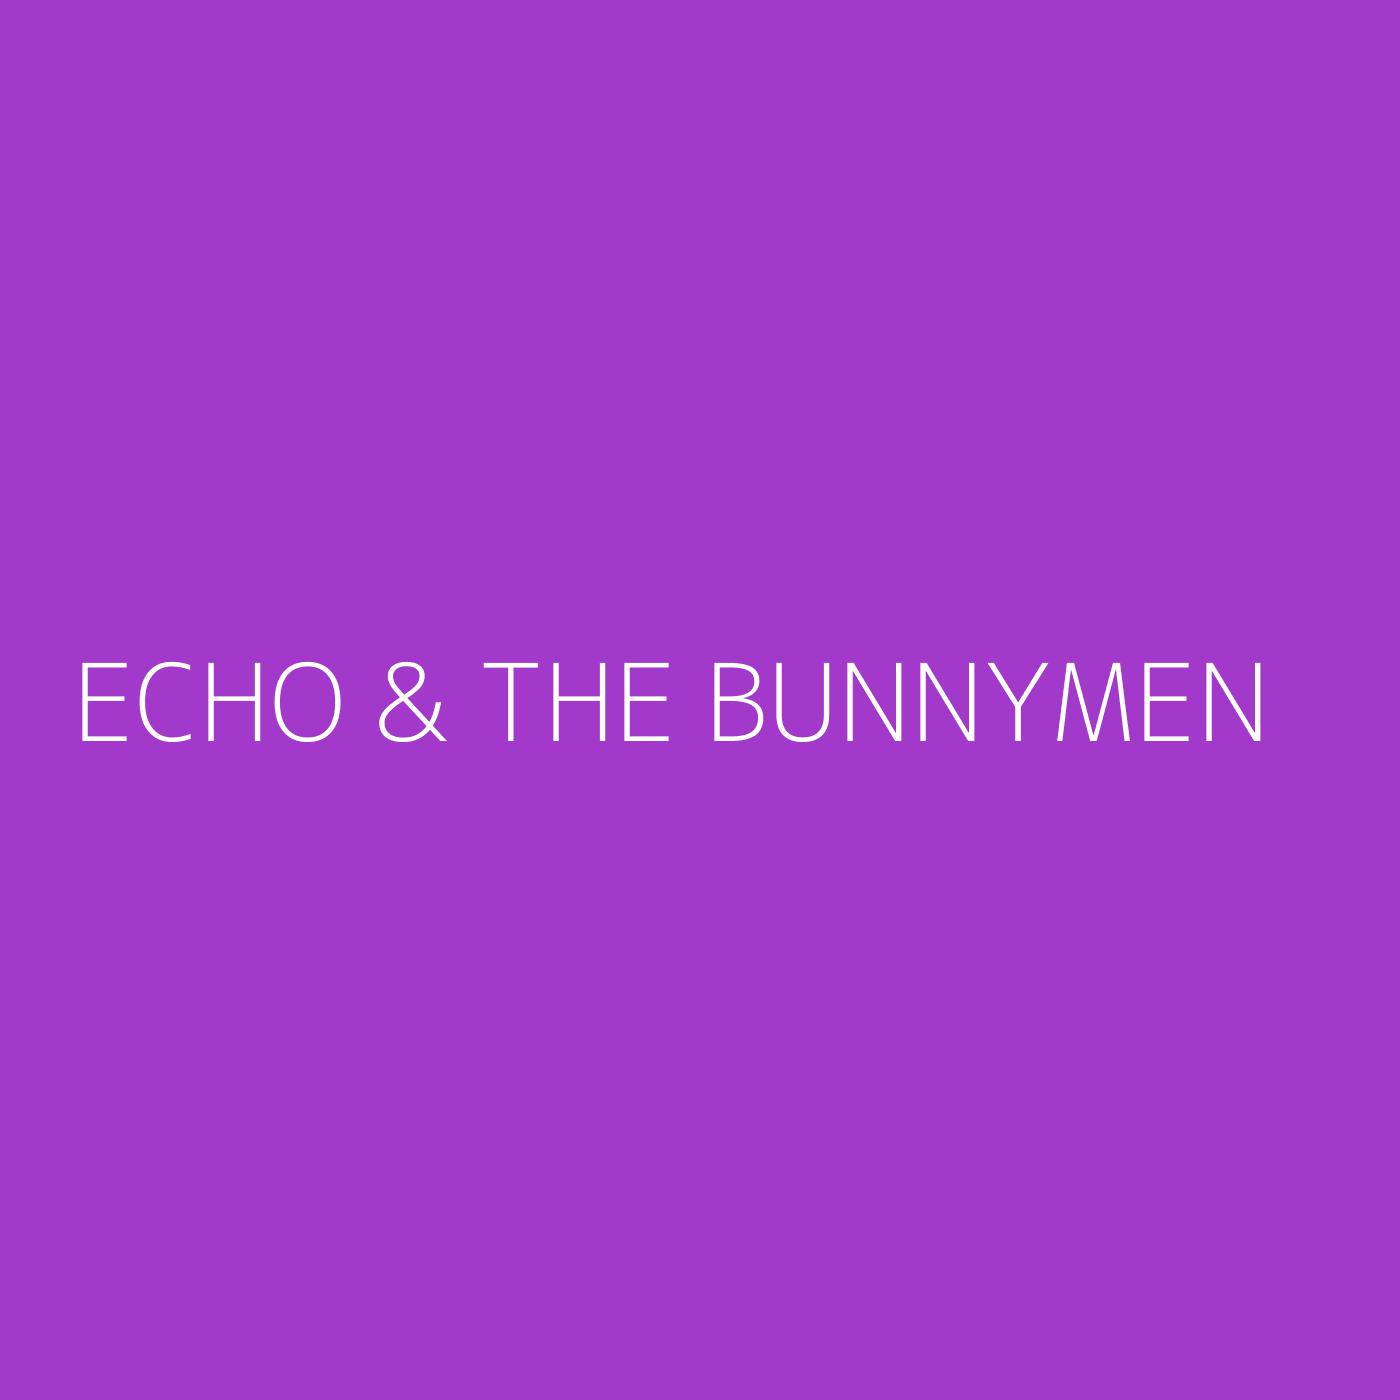 Echo & the Bunnymen Playlist Artwork